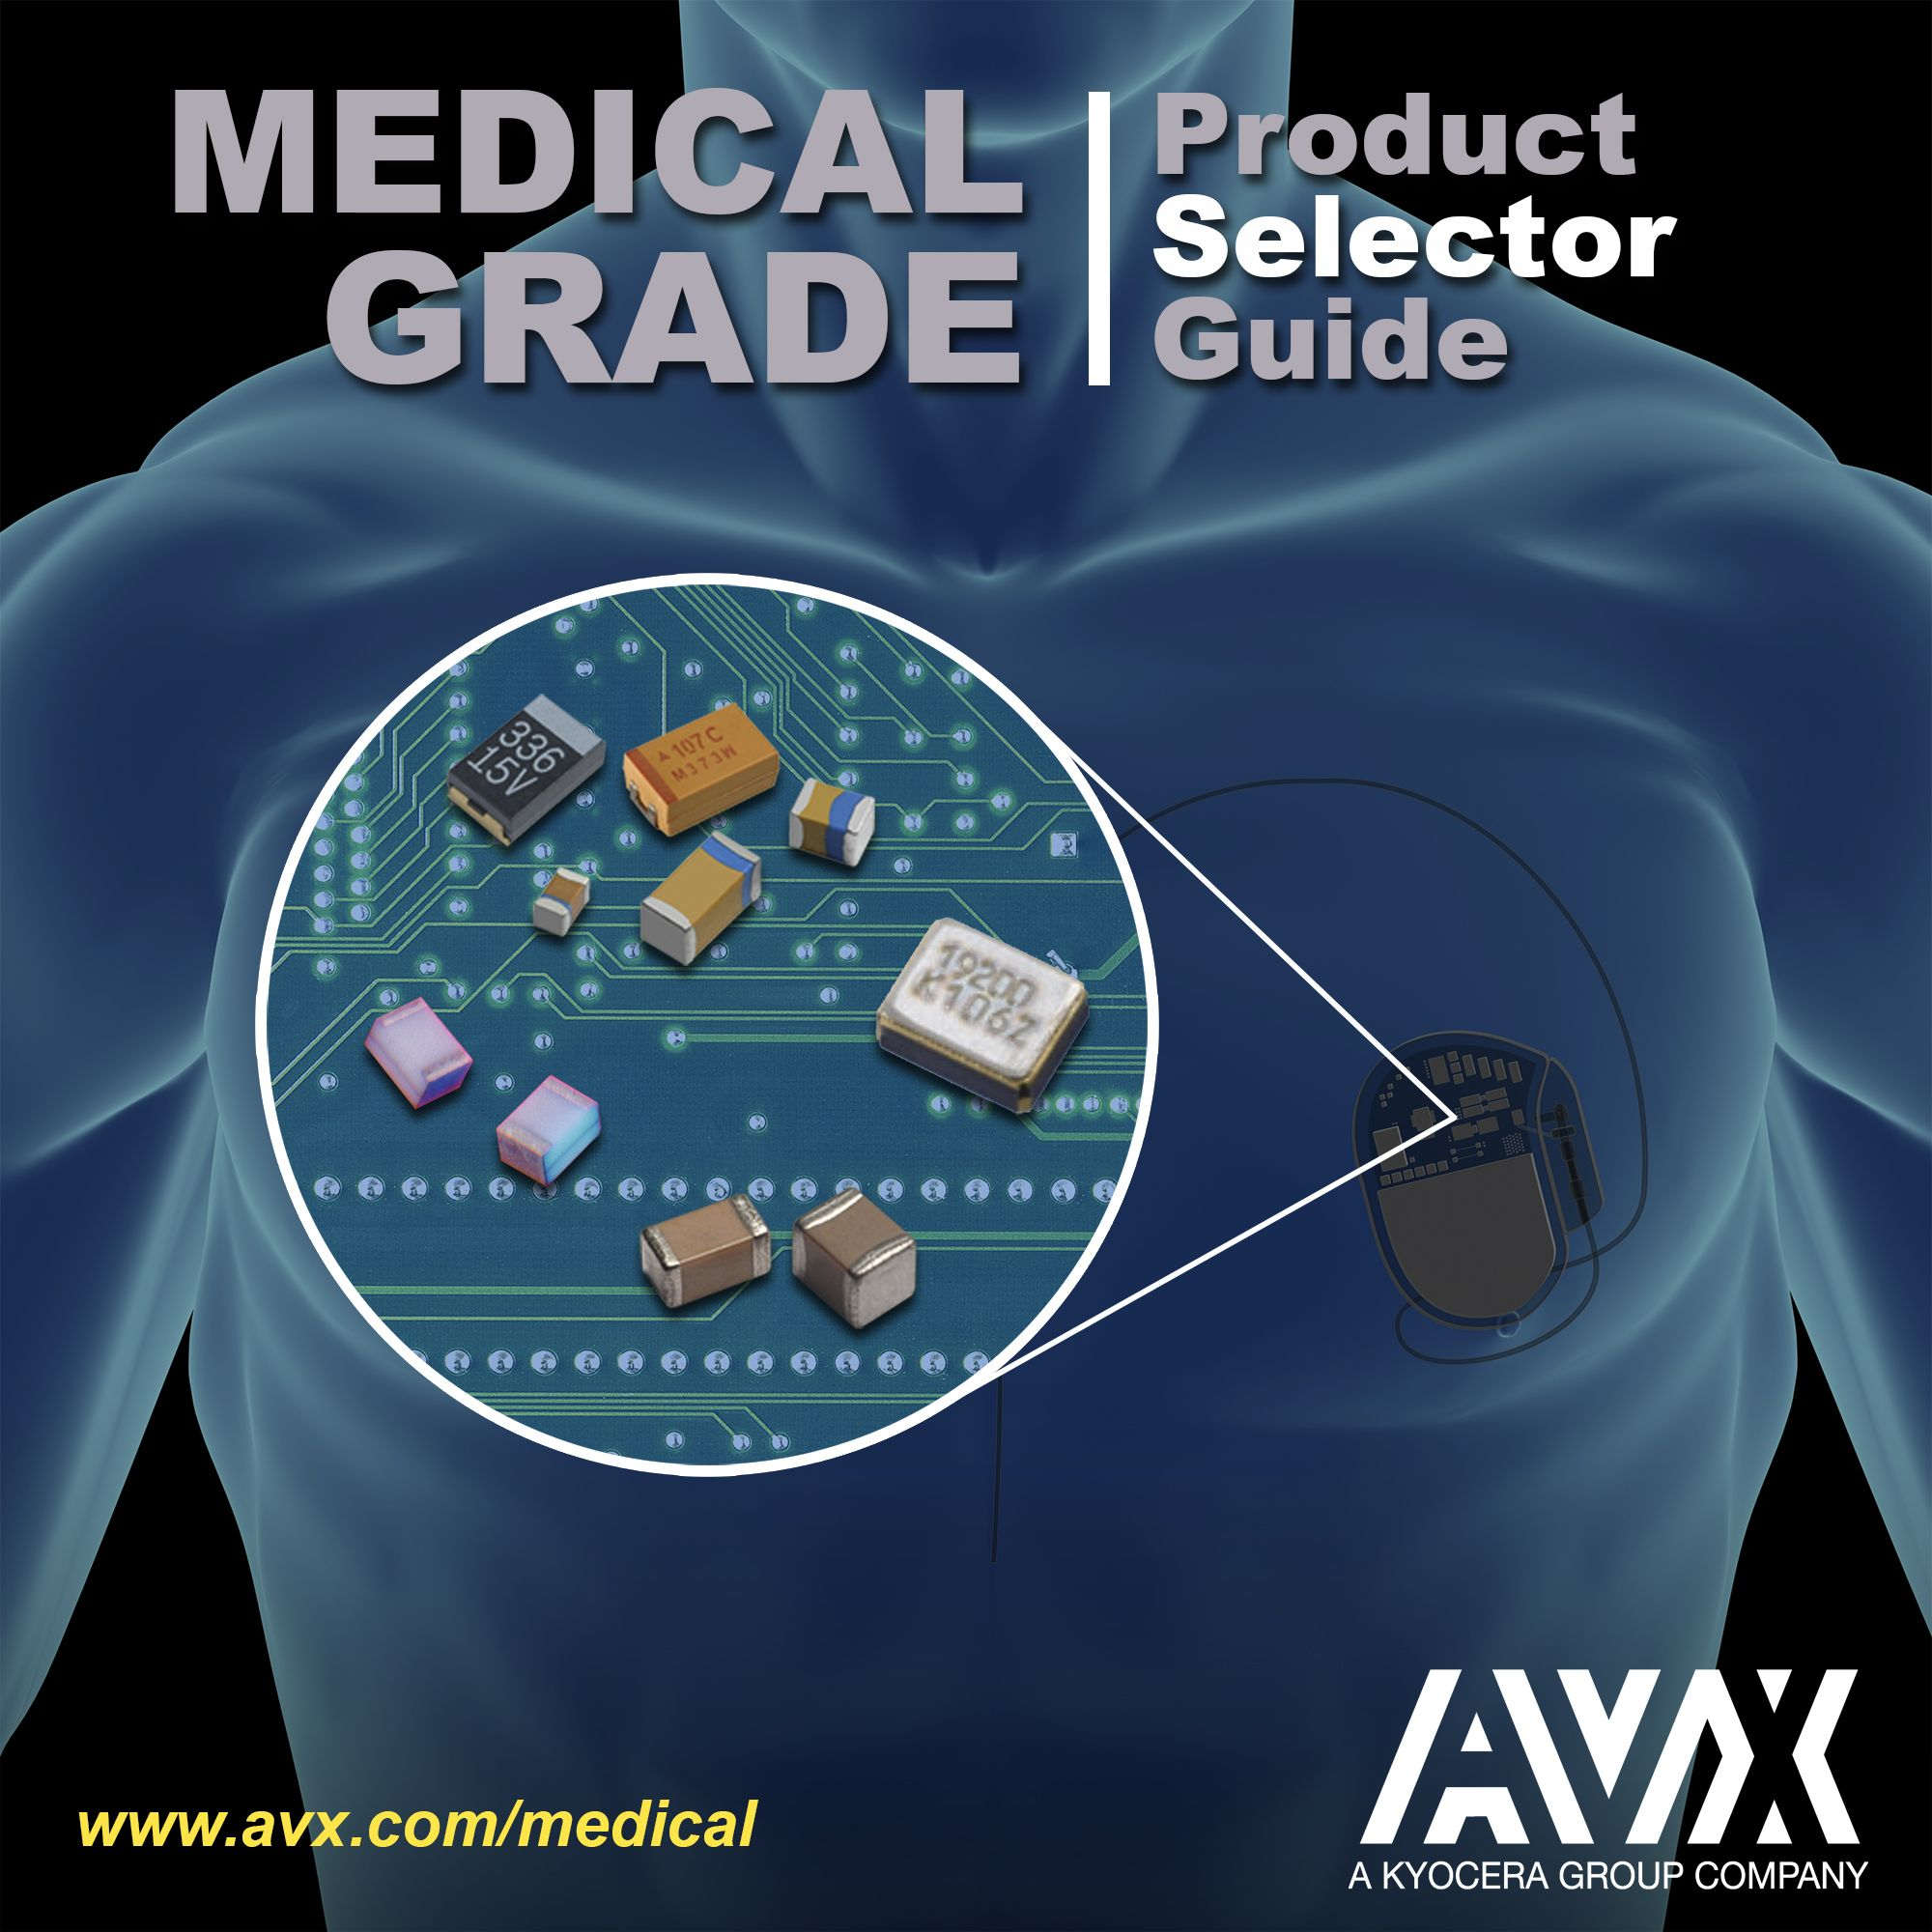 AVX Releases New Medical Selector Guide | news.sys-con.com